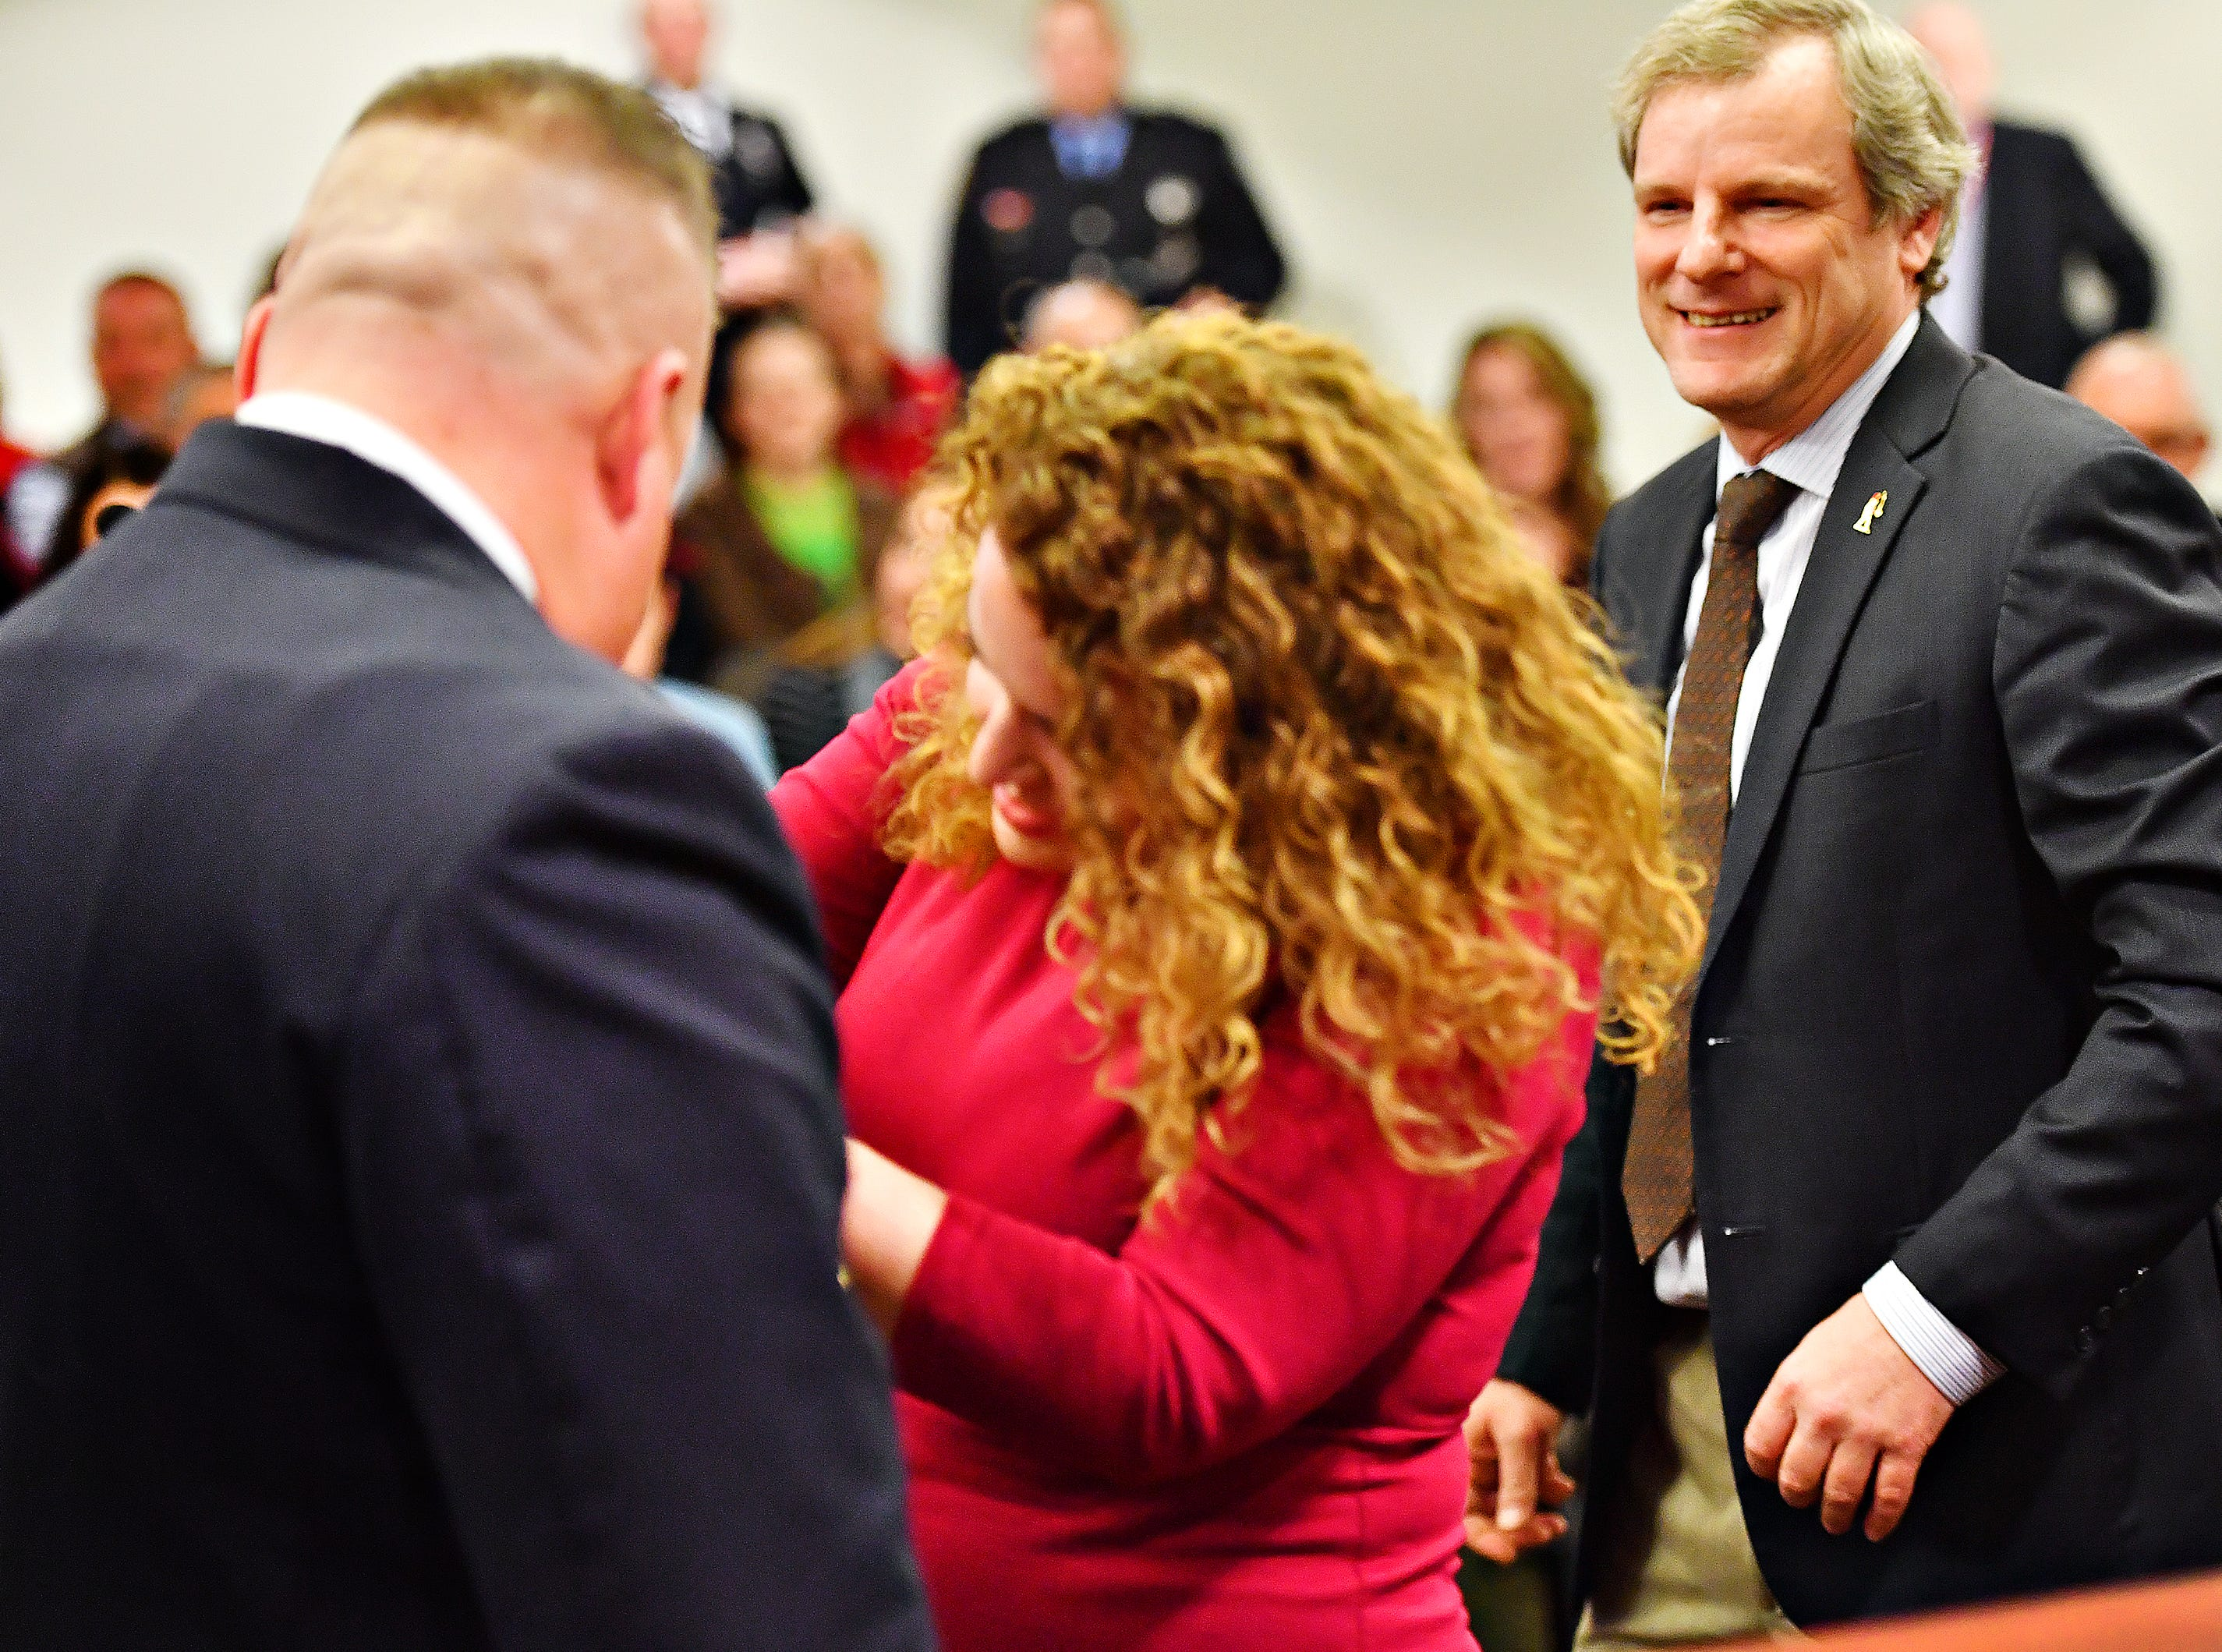 From right, York City Mayor Michael Helfrich looks on as Jess Deardorff pins her husband, York City Fire Chief Chad Deardorff during his swearing-in ceremony at York City Hall in York City, Friday, March 8, 2019. Dawn J. Sagert photo